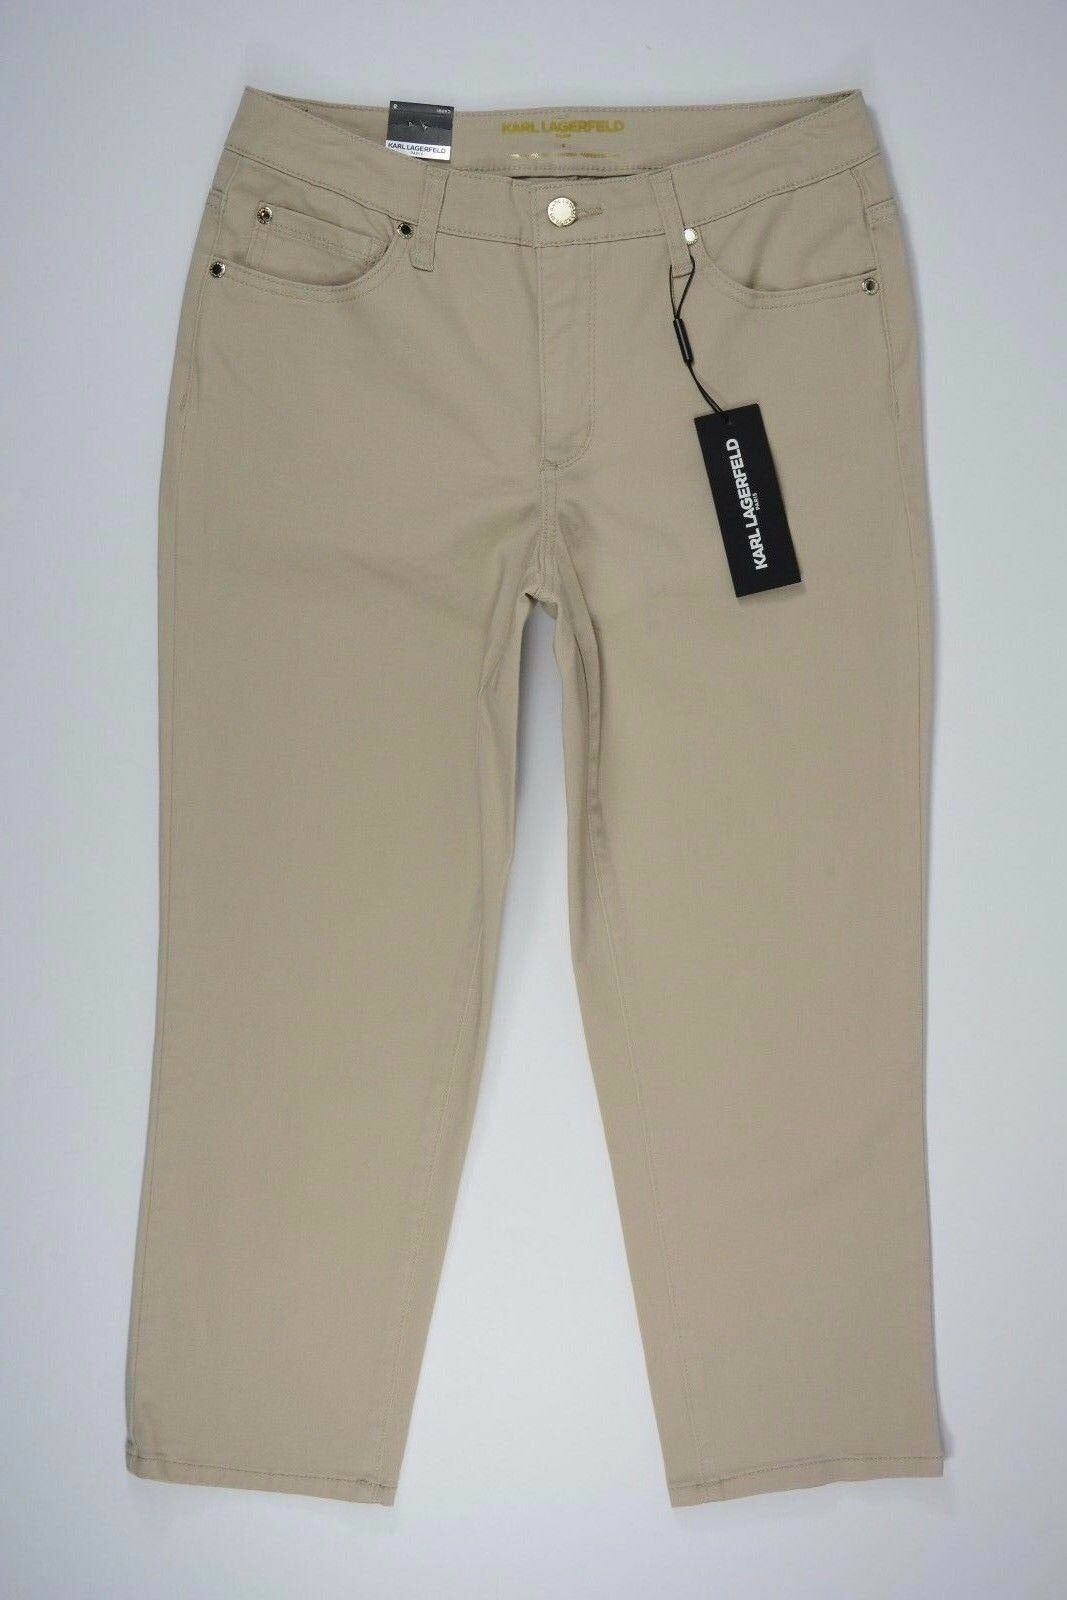 Women's Karl Largerfeld size 8 Tan Khaki Stretch Capri Crop Slimming Pants NEW